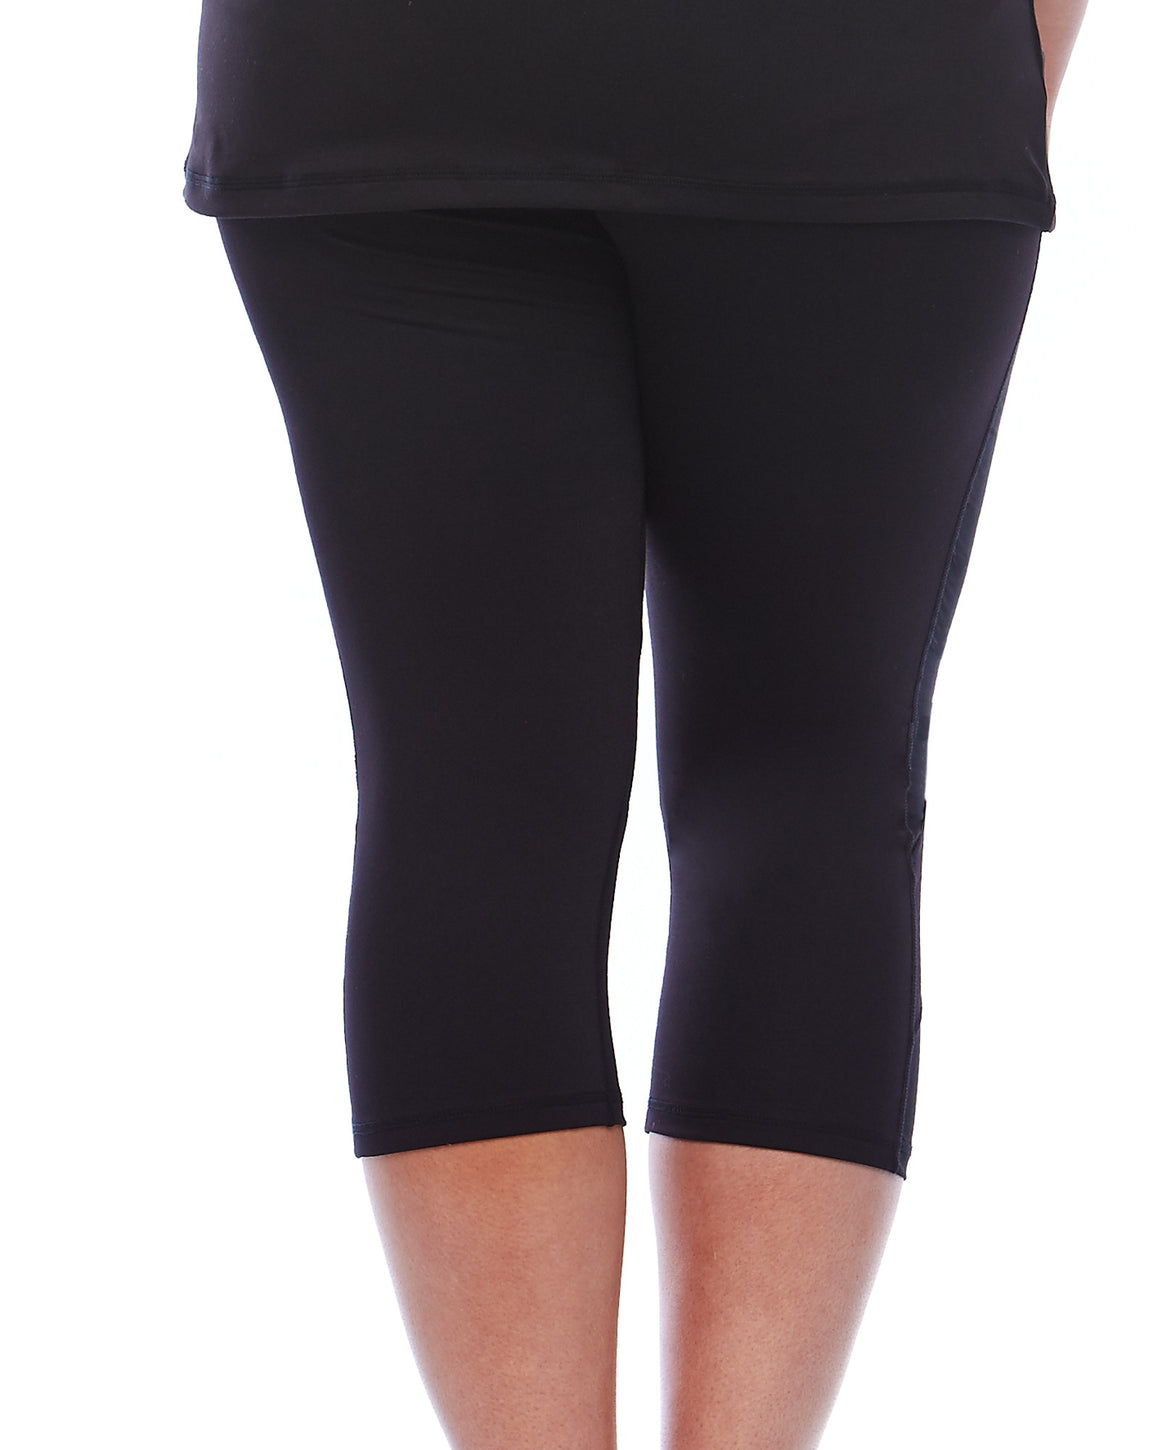 Mesh Sculpt Tights | Lift and Sculpt | Plus Size Activewear